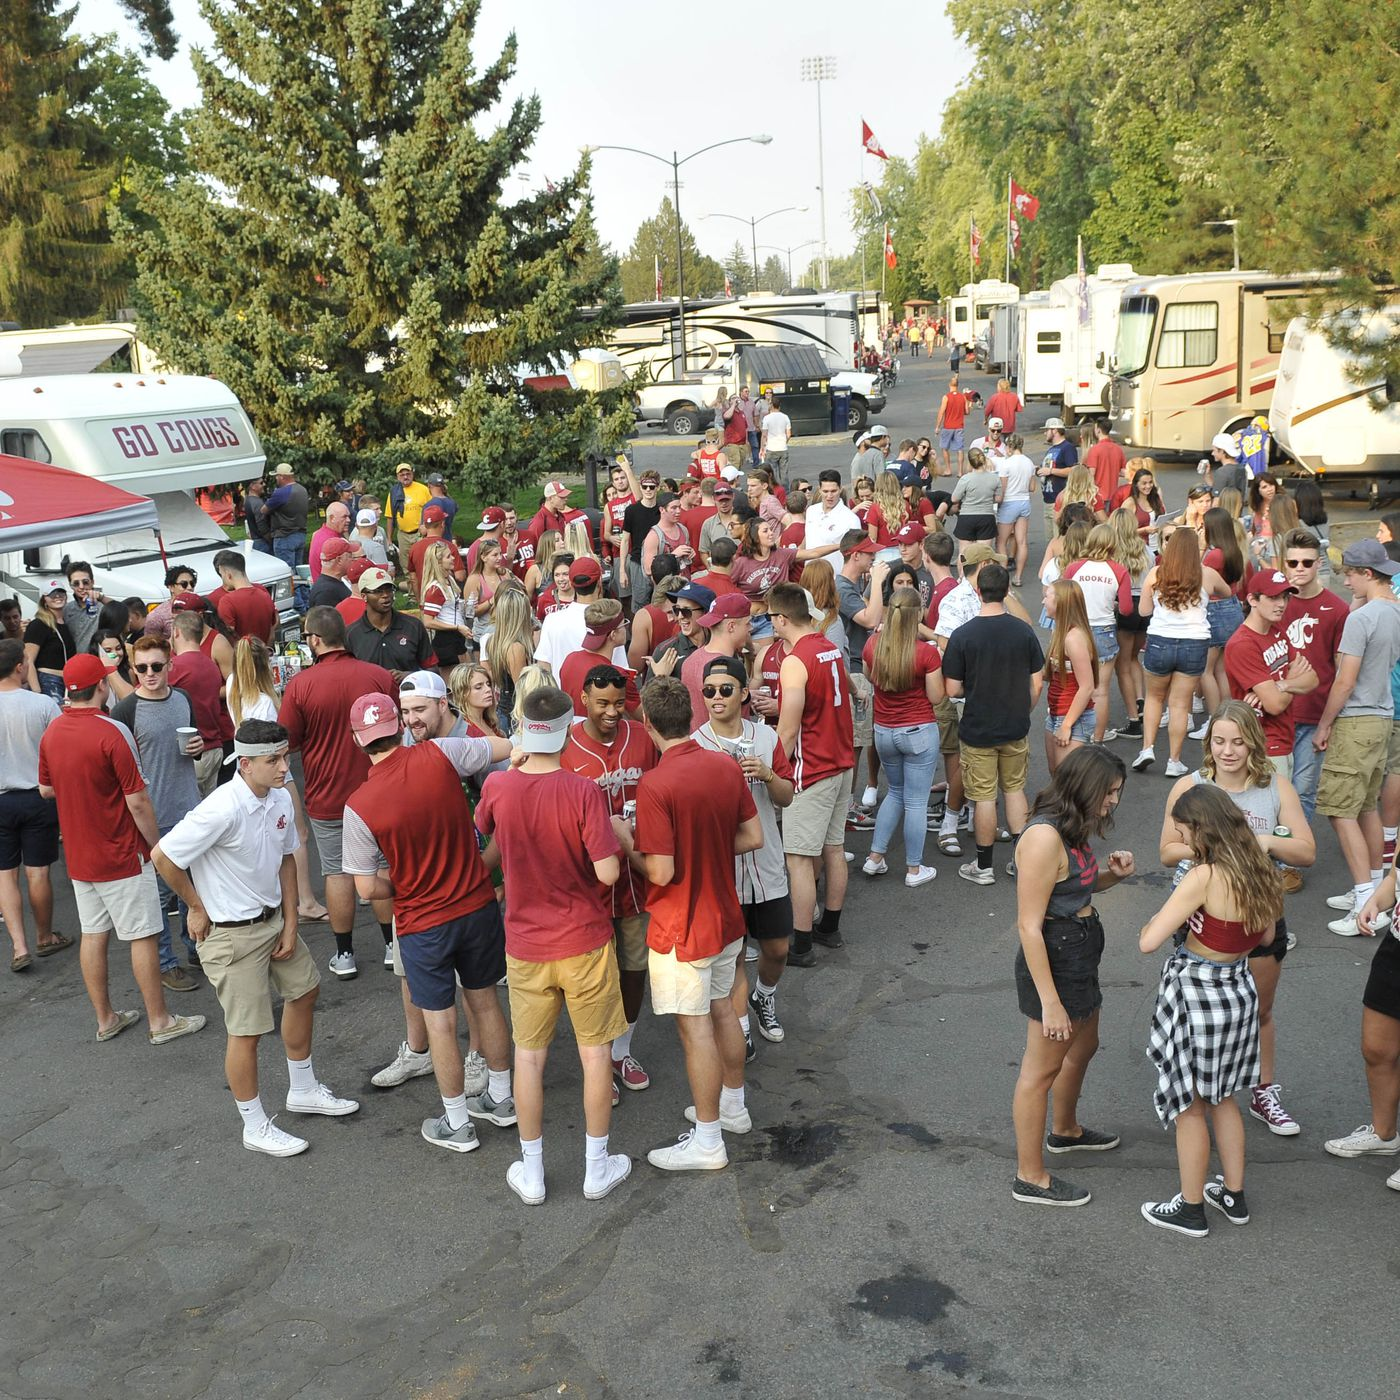 Wsu S 2019 Football Schedule Features A Rare Start Time Cougcenter